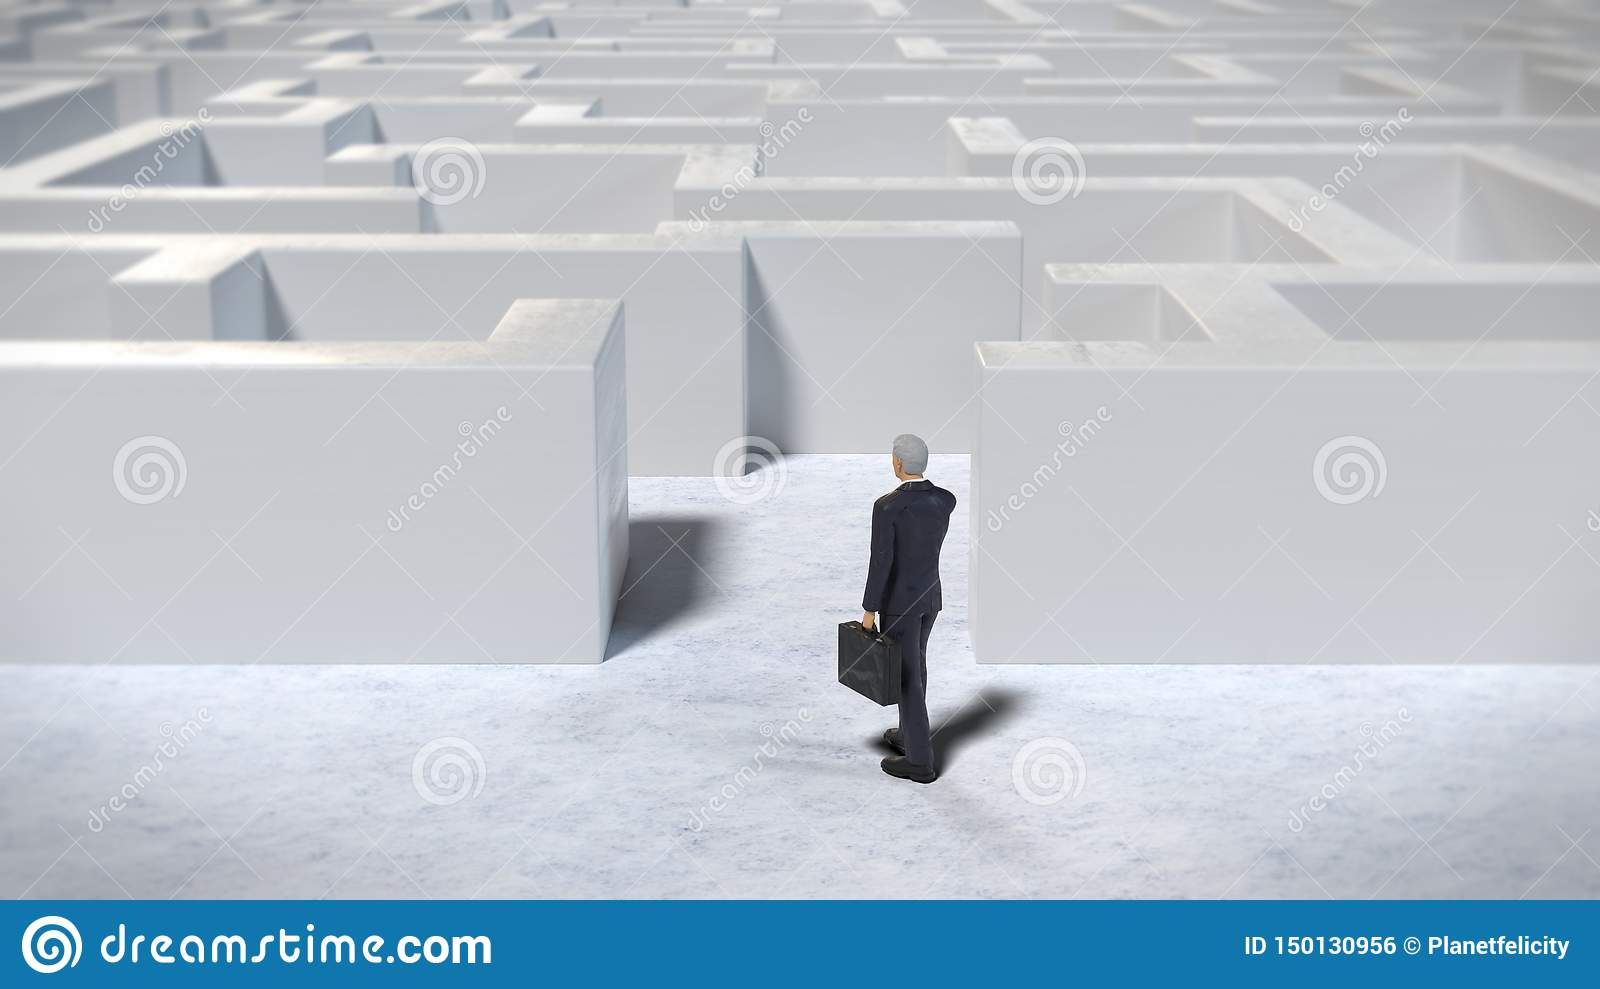 Toy miniature businessman figurine entering a white maze structure, 3d illustration